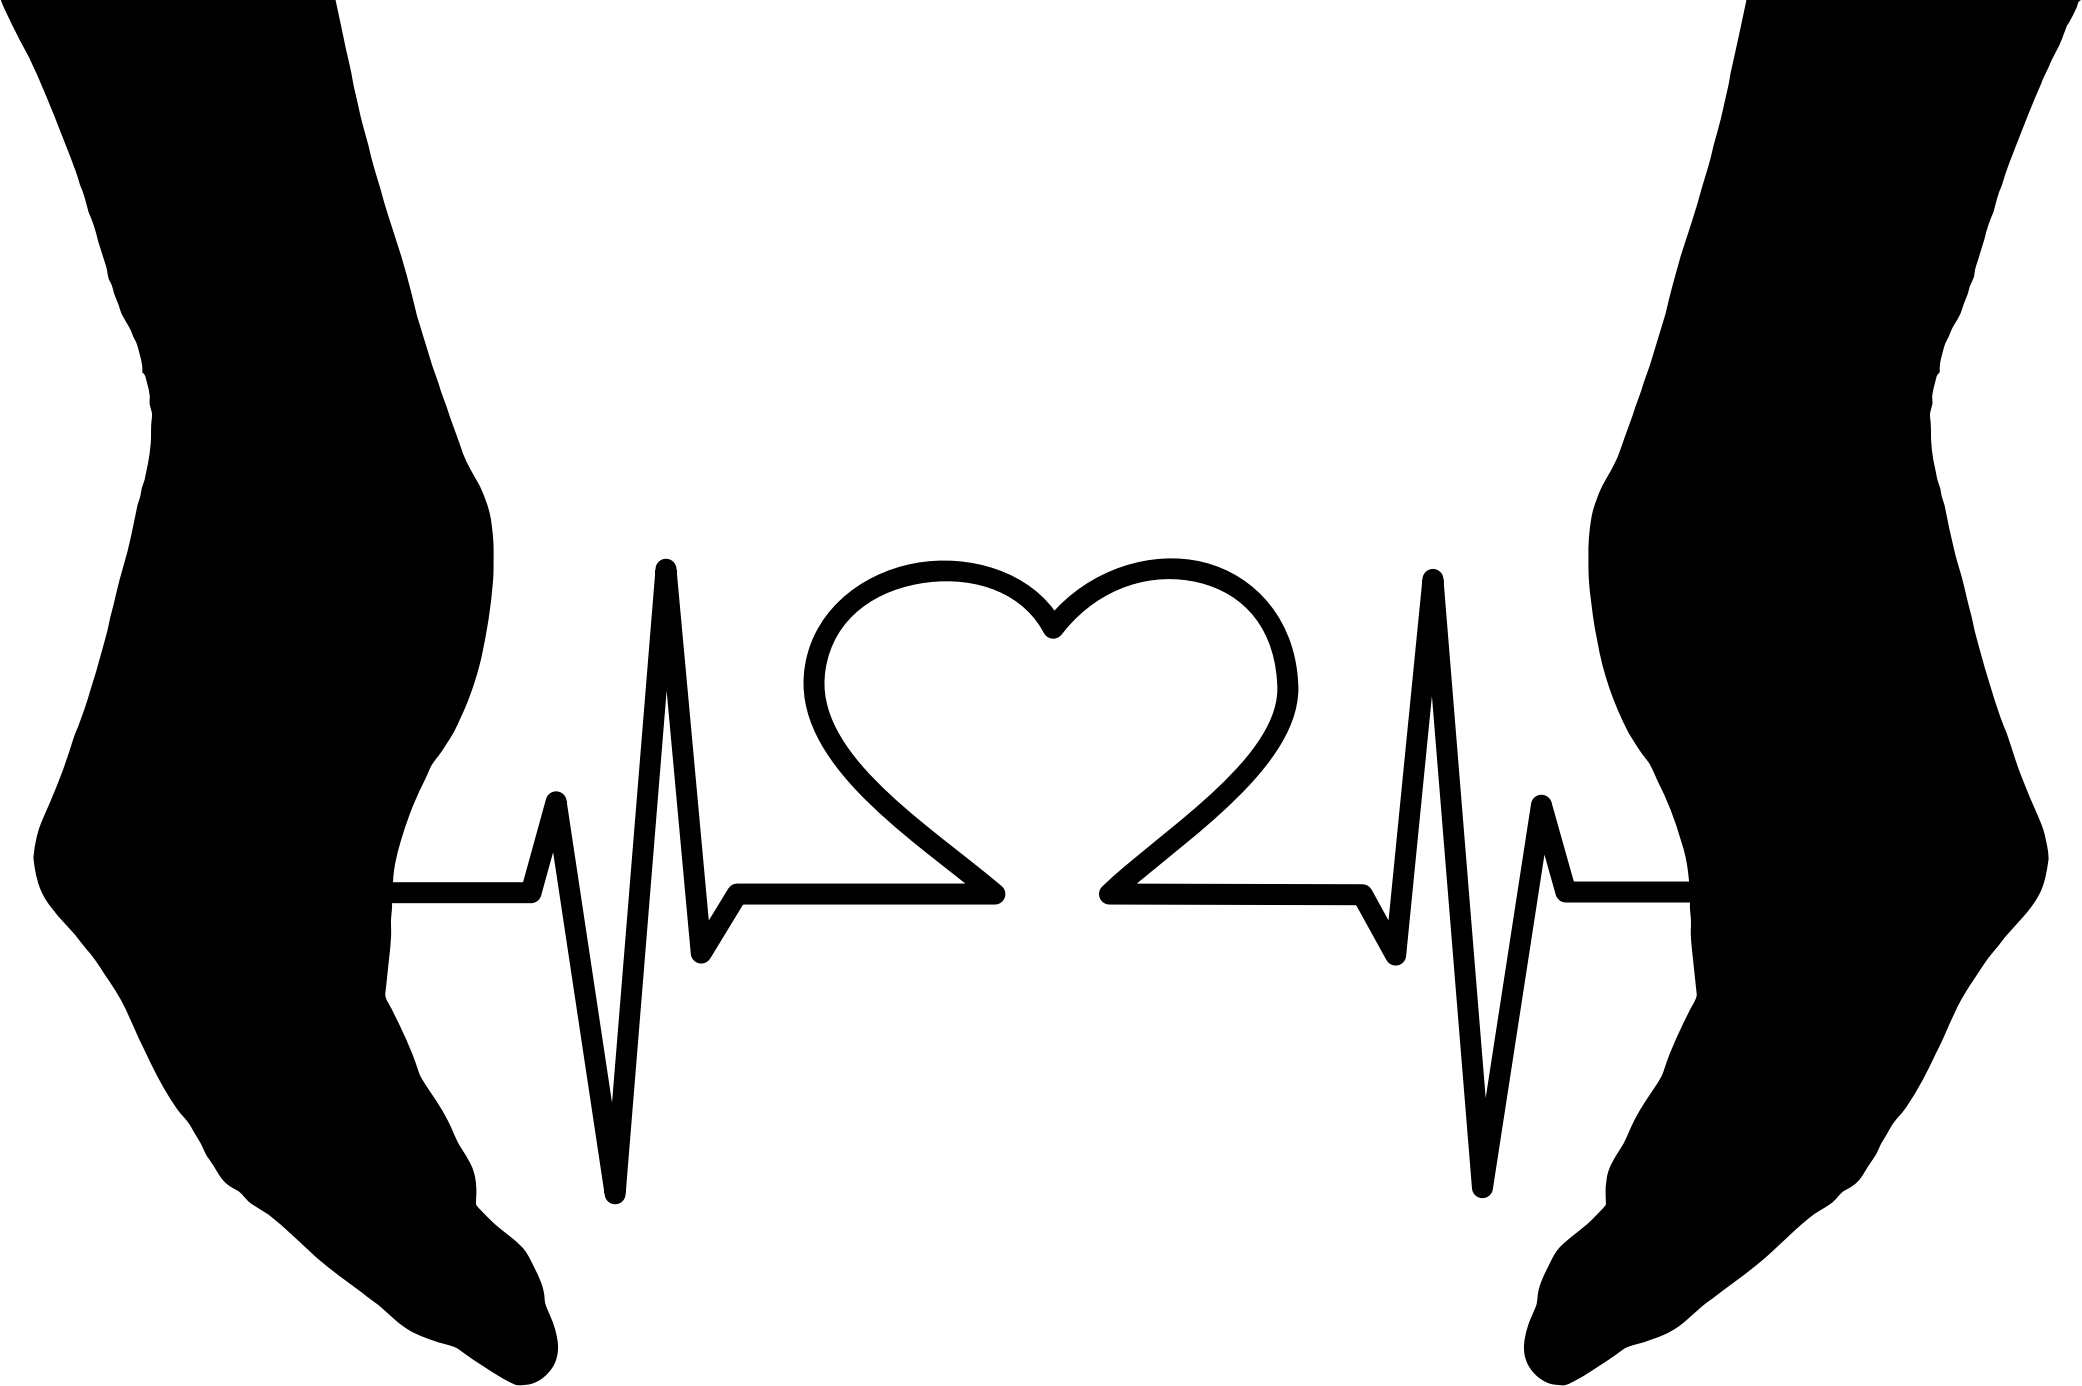 Free Medical Silhouette Cliparts Download Free Clip Art